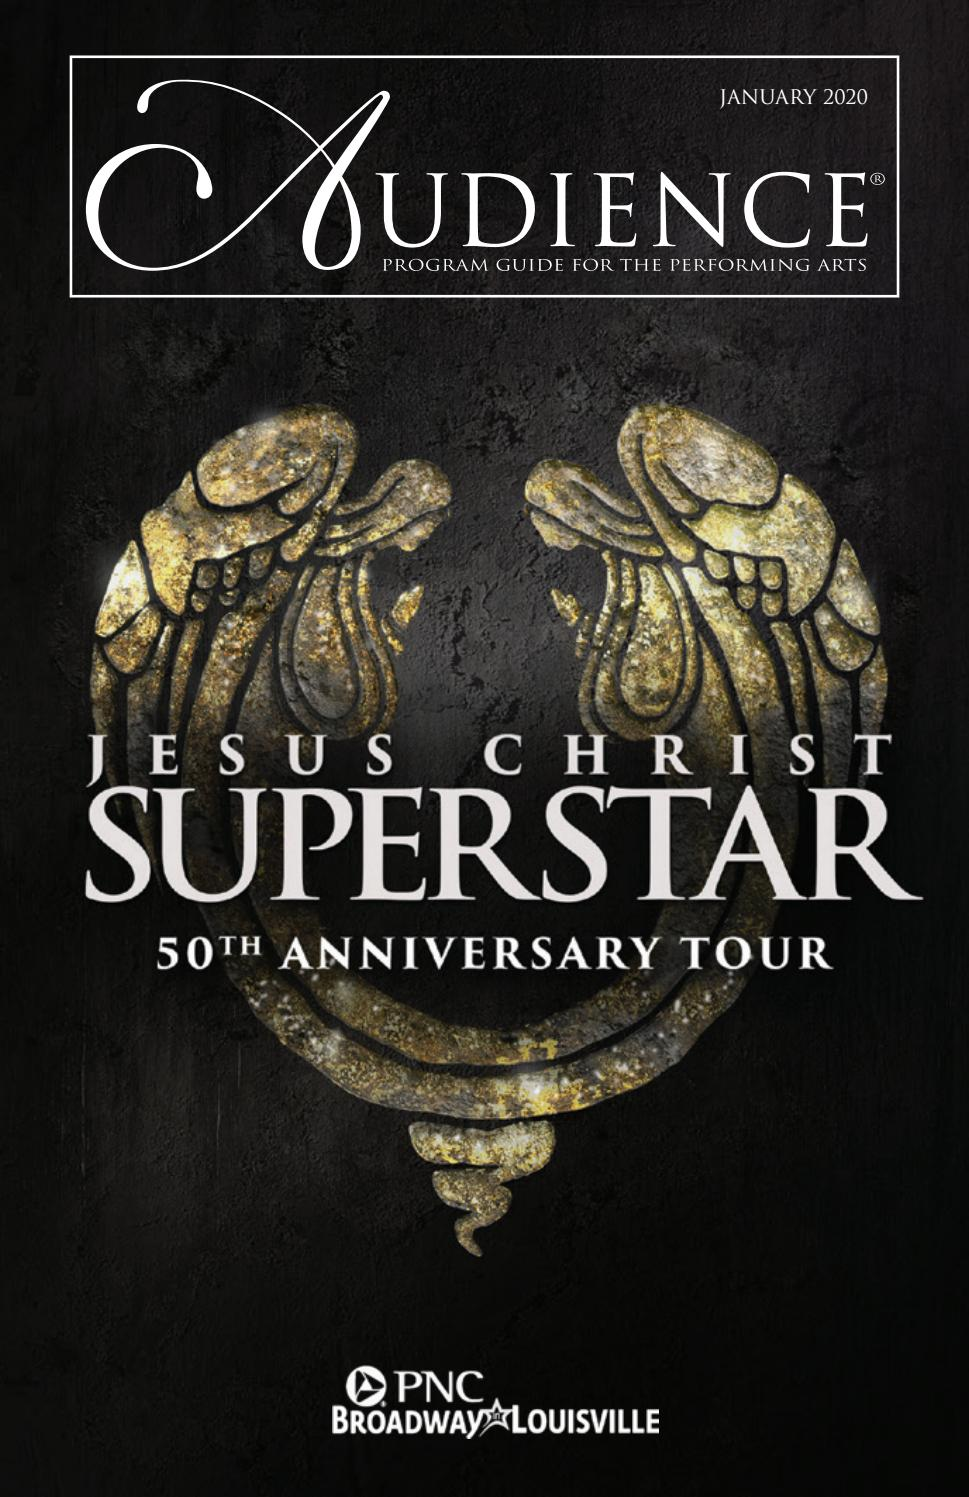 Pnc Broadway Series January 2020 Jesus Christ Superstar By Audience502 Issuu